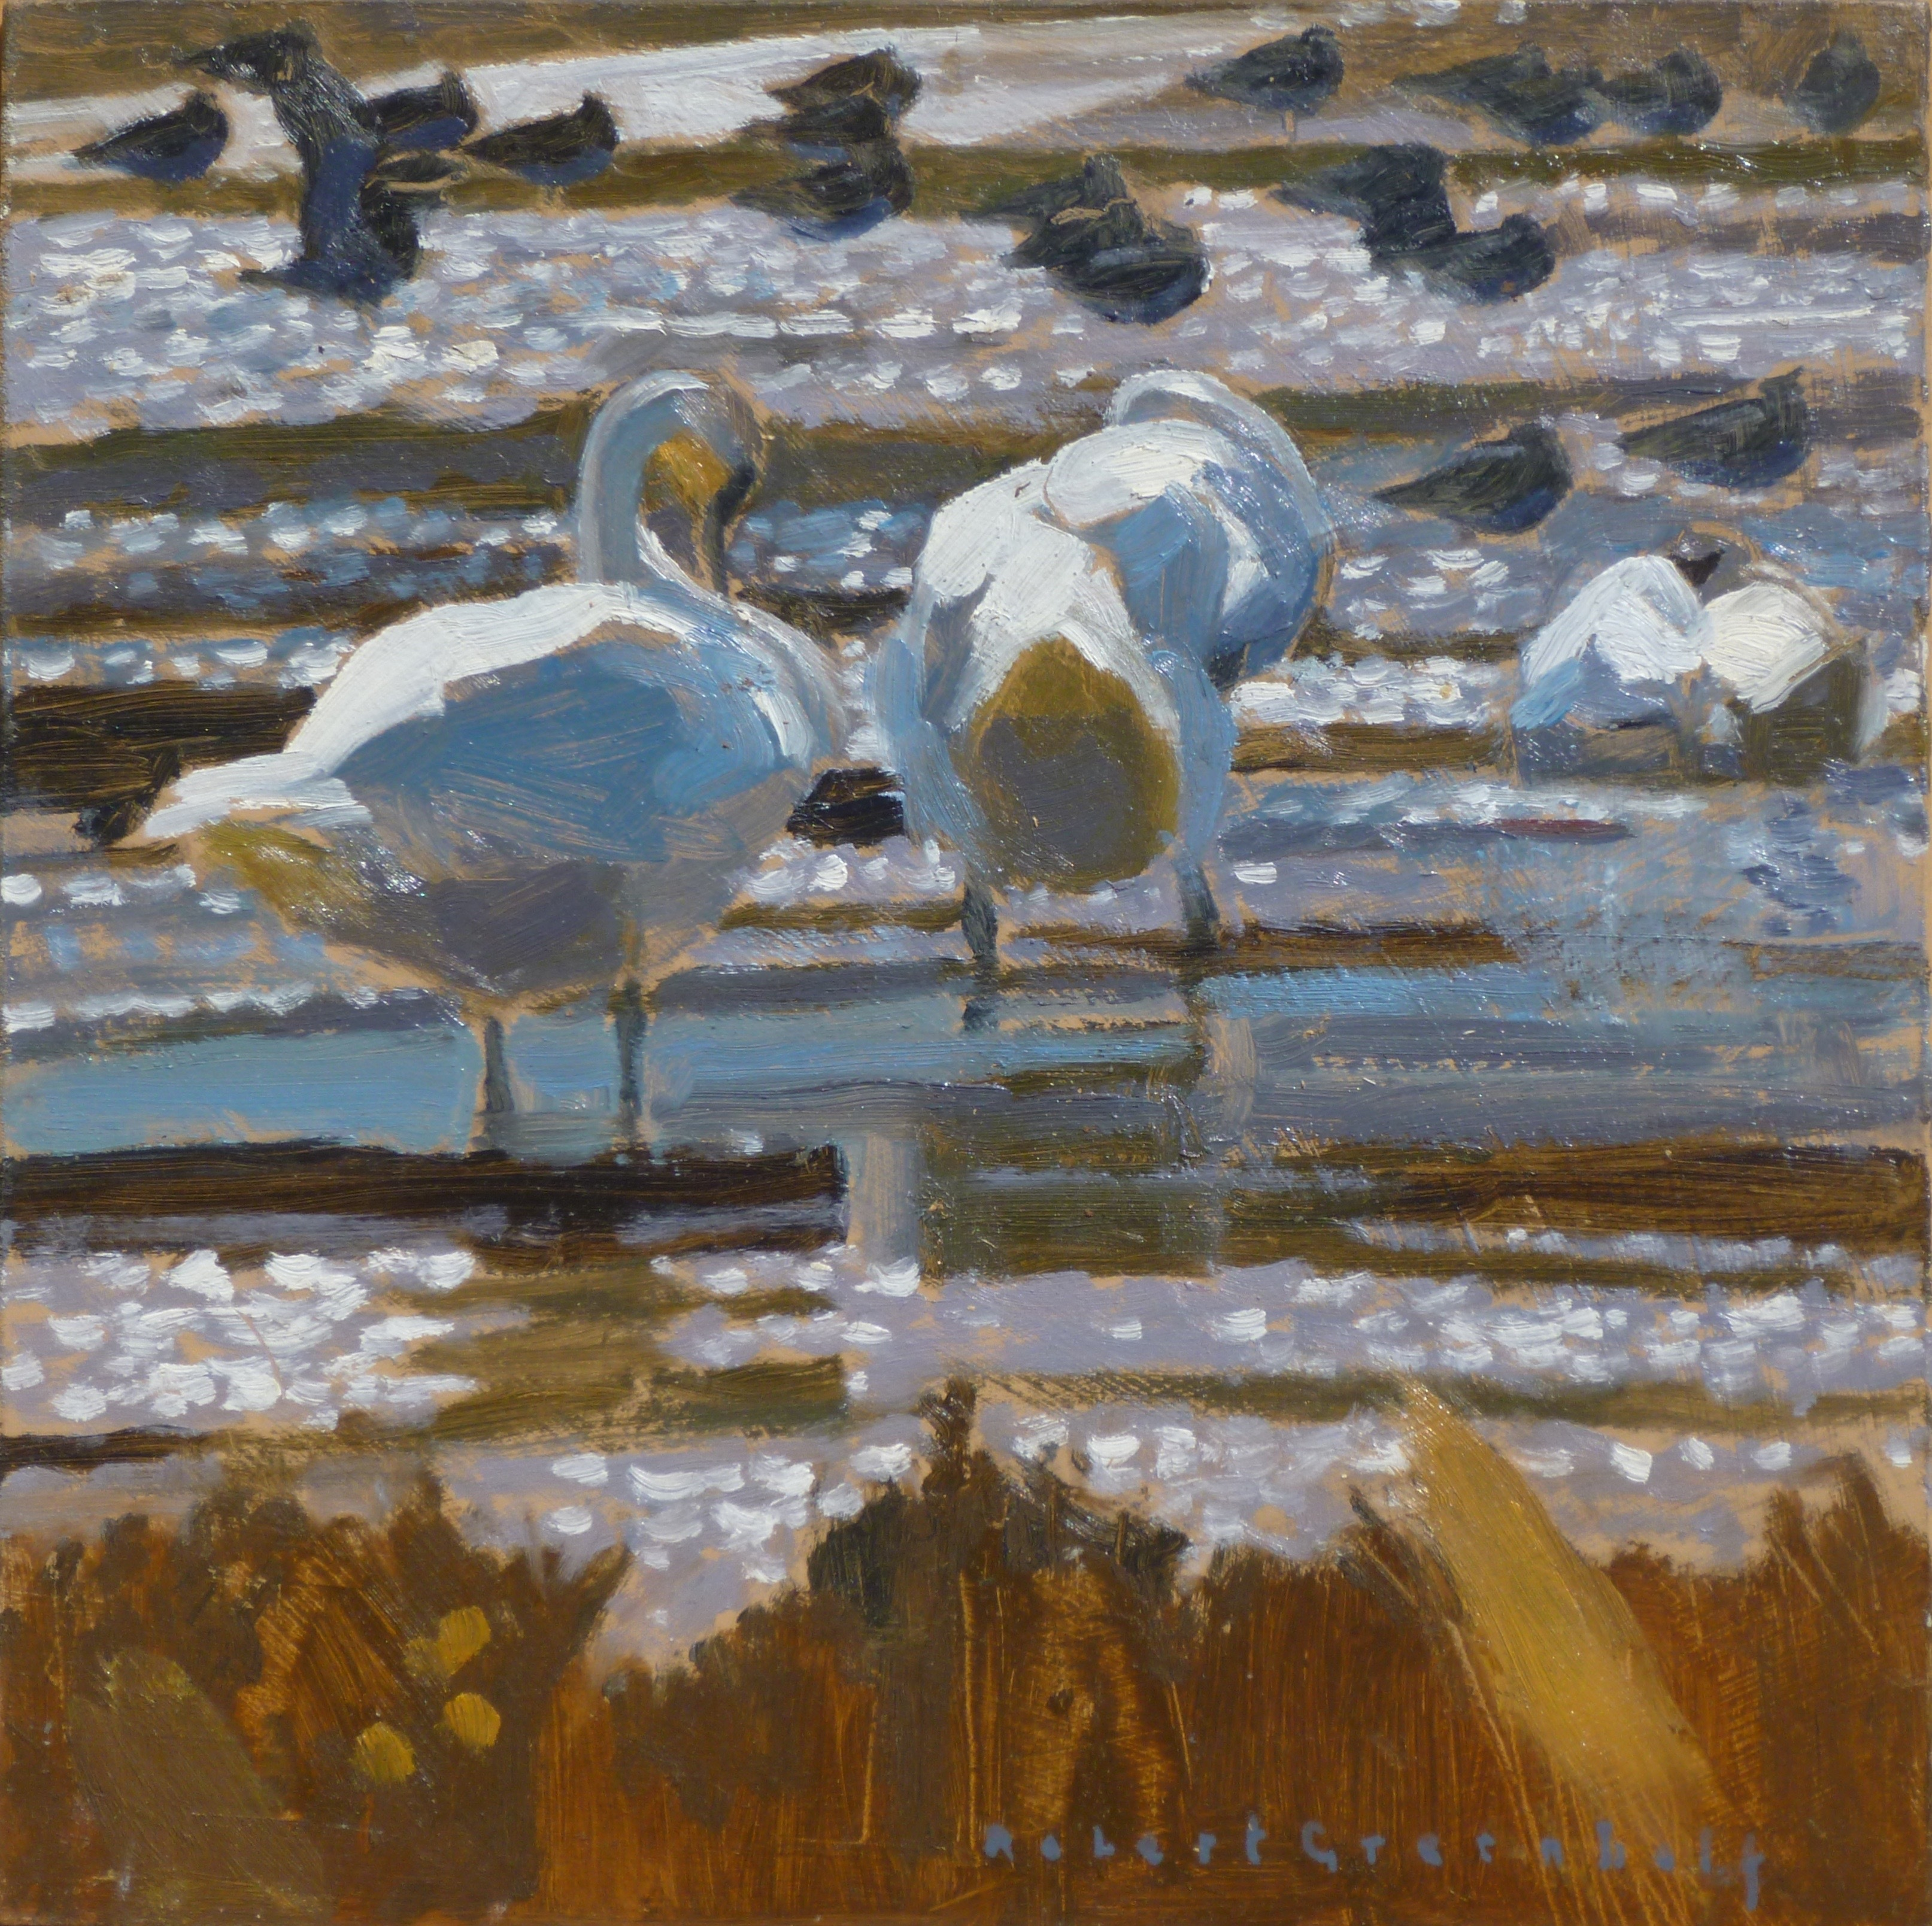 <p>Mute Swans and Lapwing by Robert Greenhalf</p>